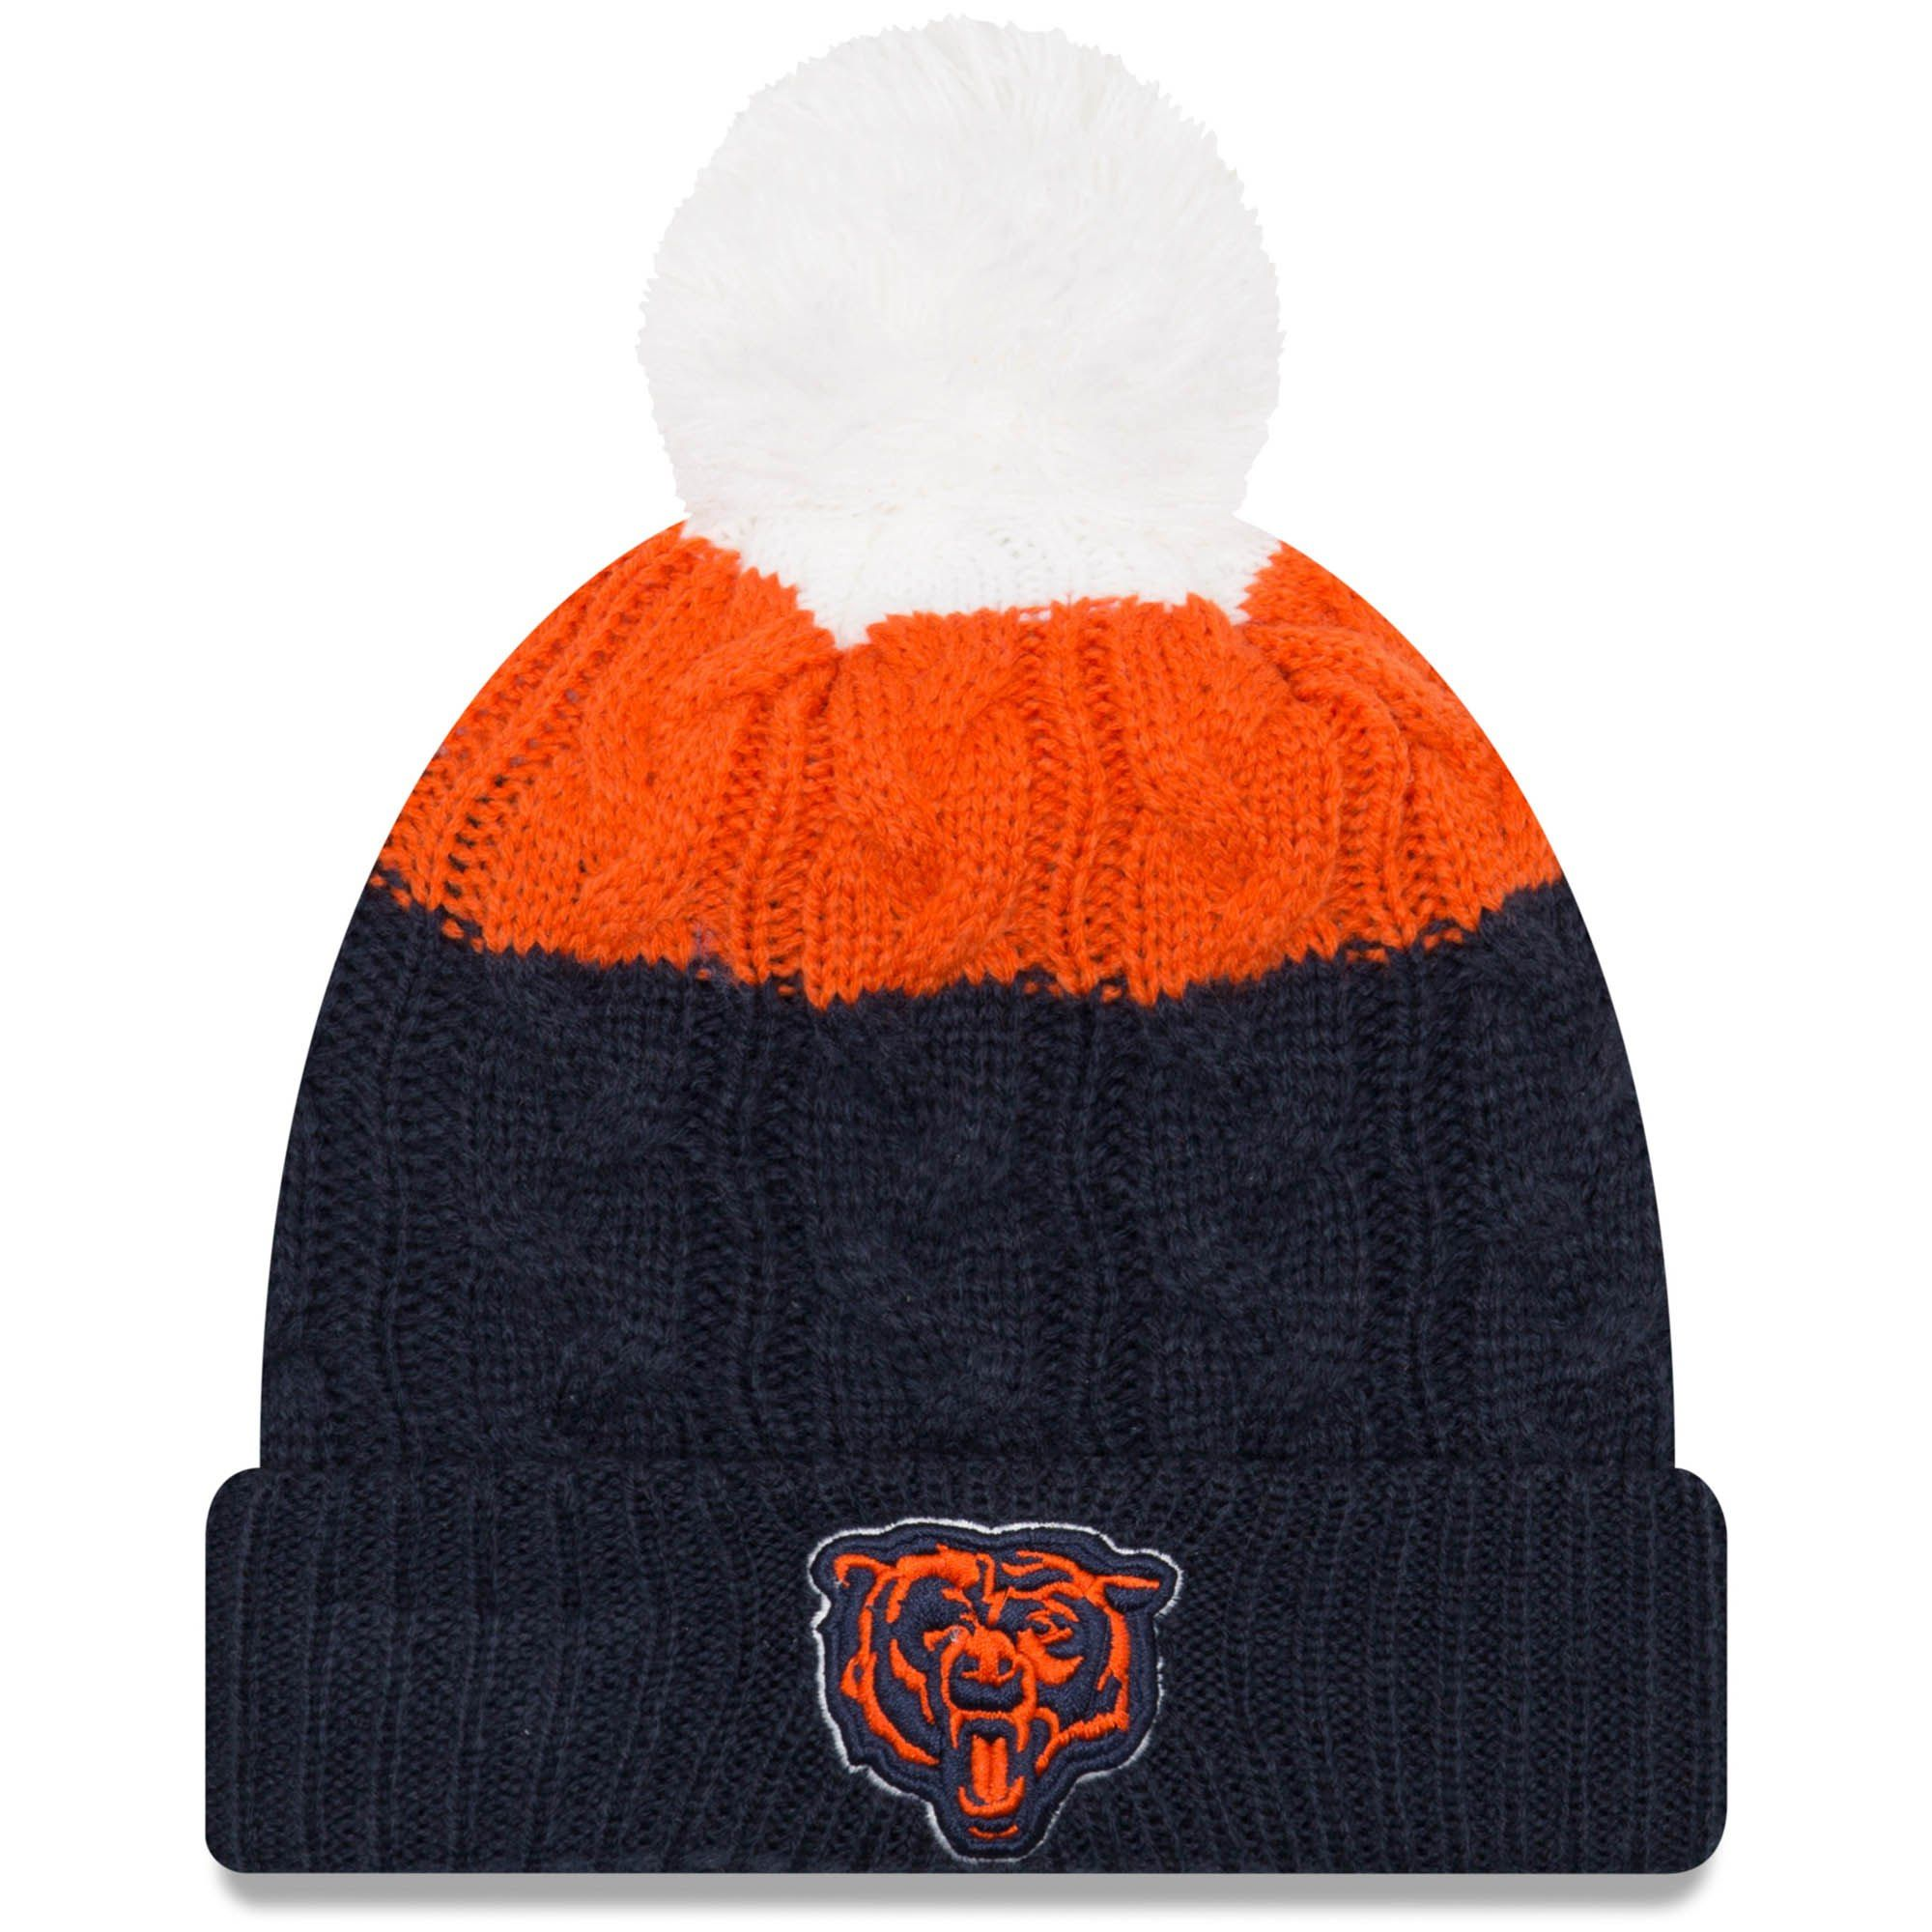 4f59544730ef85 Women's Chicago Bears New Era White/Navy Alternate Logo Layered Up 2 Cuffed  Knit Hat with Pom, Your Price: $23.99